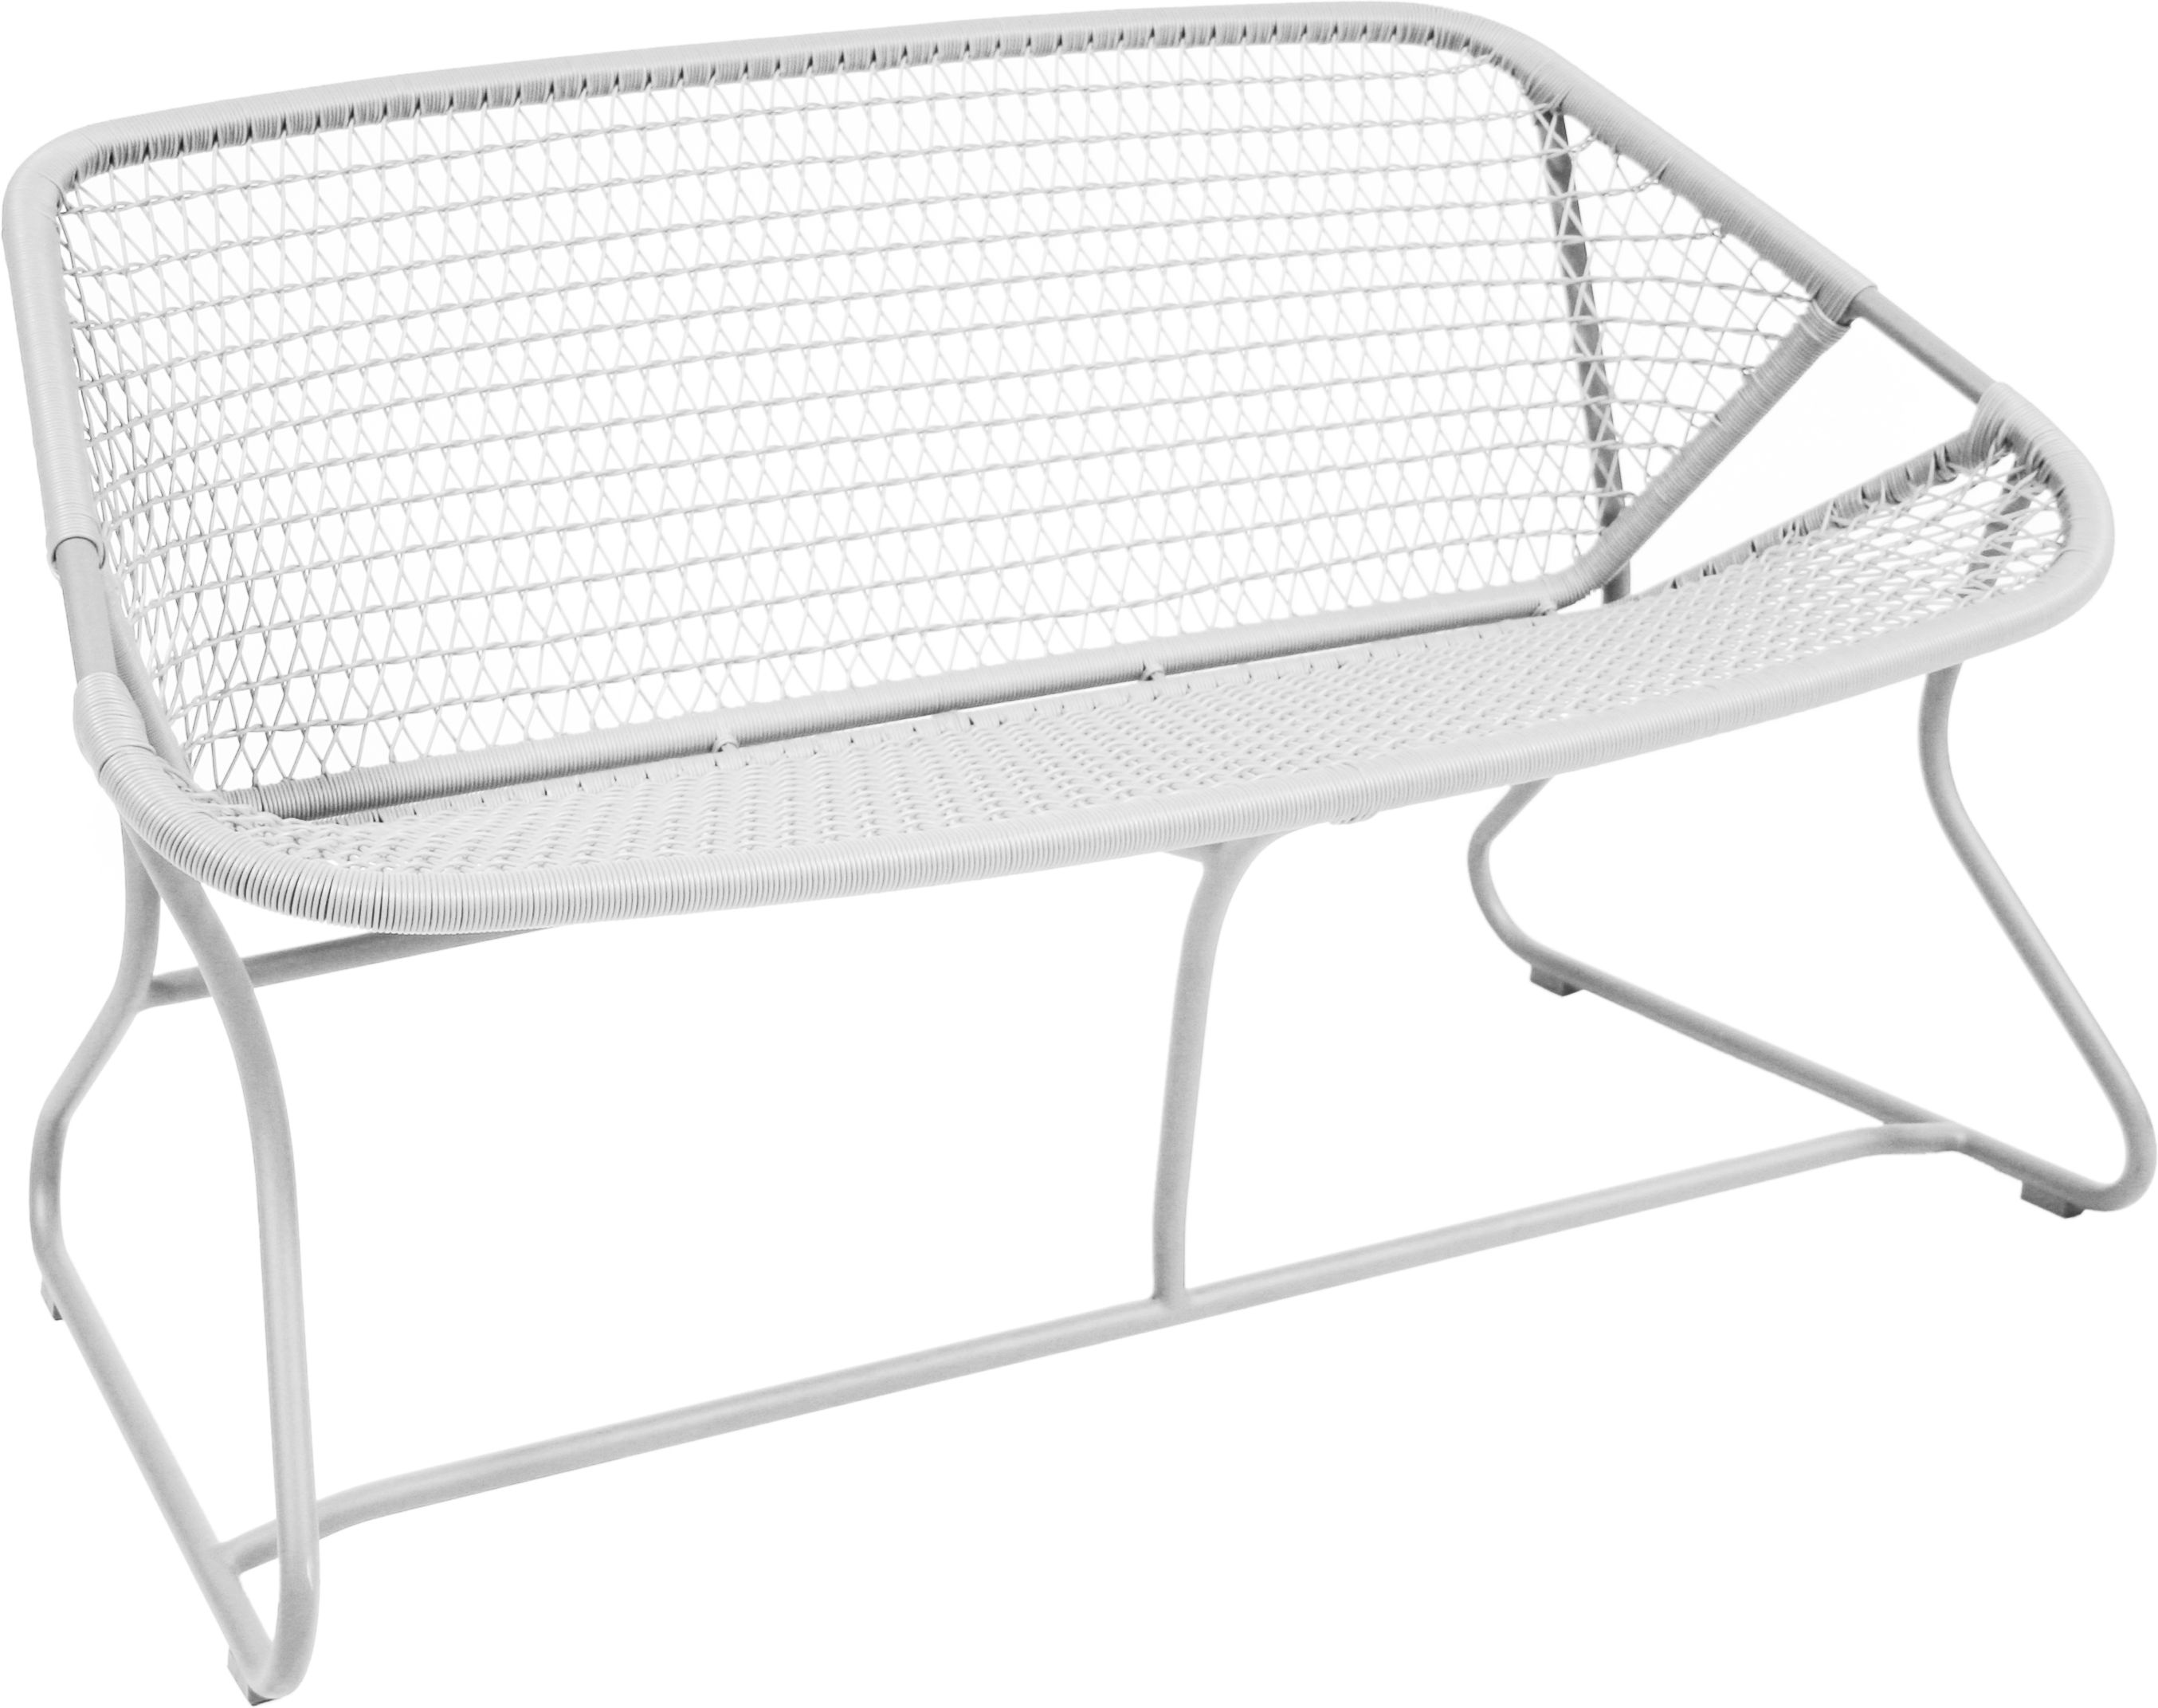 Furniture - Benches - Sixties Bench by Fermob - White - Aluminium, Plastic material